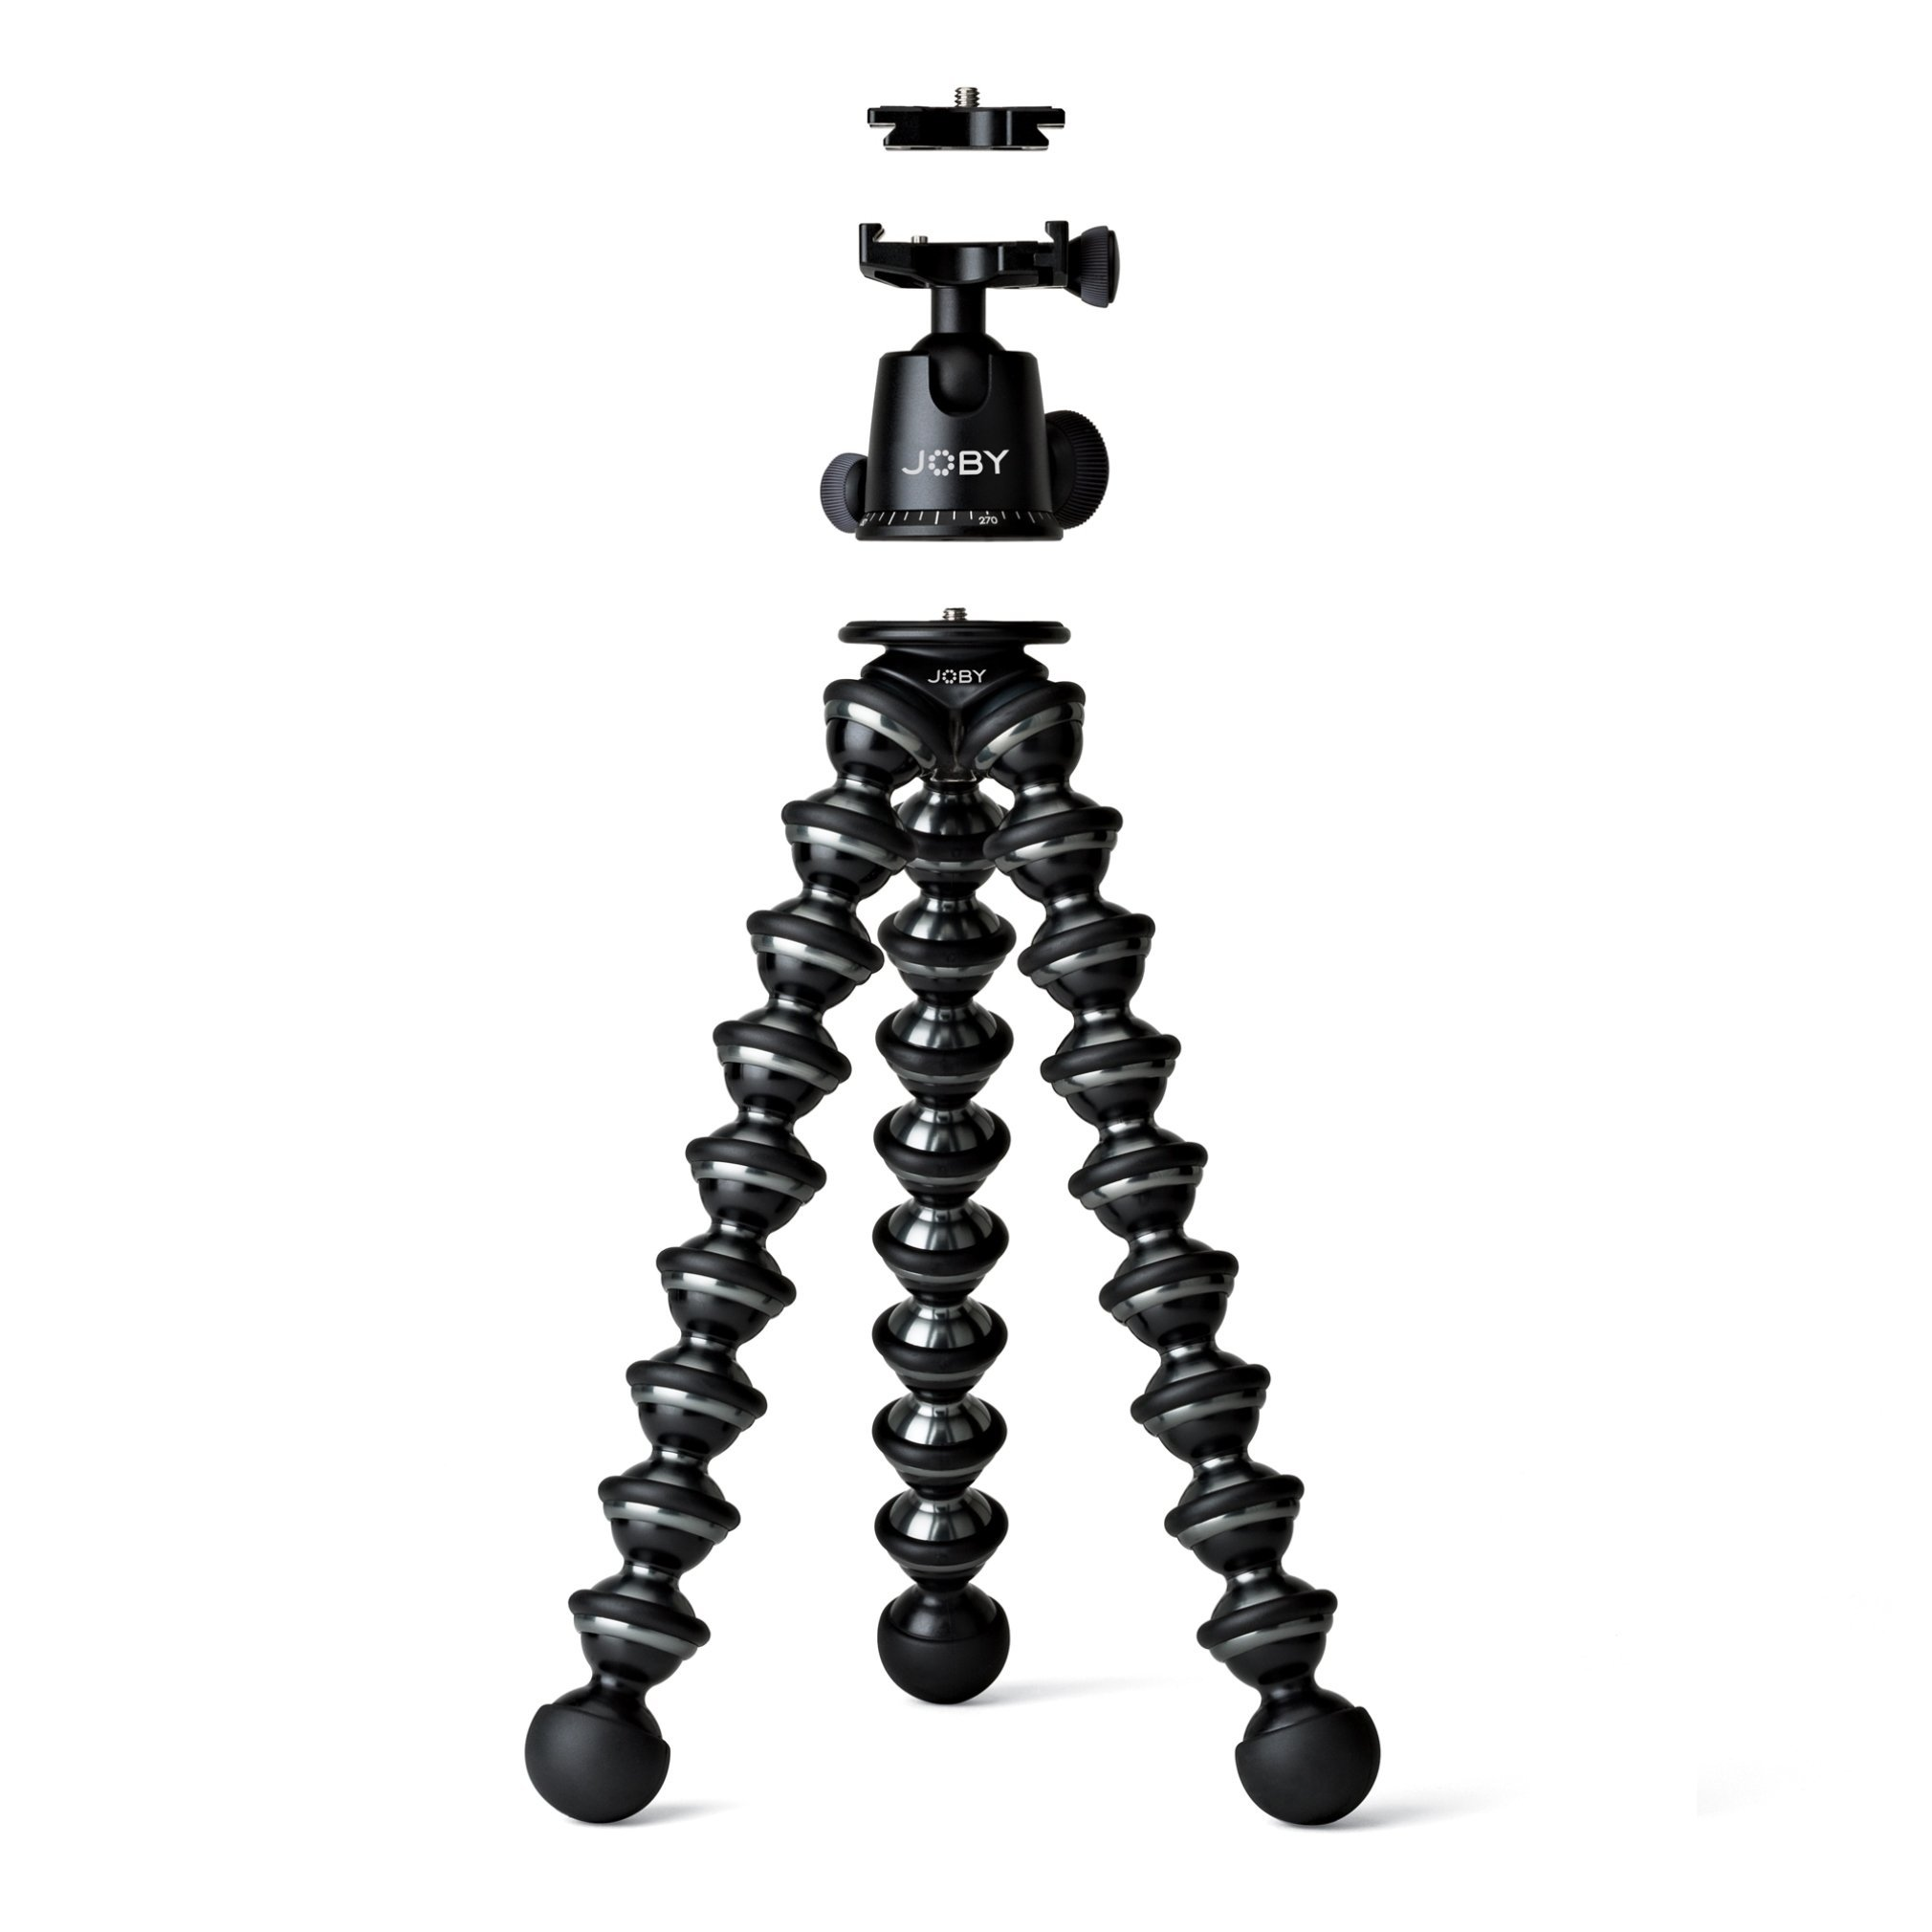 JOBY GorillaPod Focus with Ballhead X Bundle. Flexible Camera Tripod with Ballhead for DSLR Camera Rigs with Zoom Lenses up to 5kg. (Renewed) by Joby